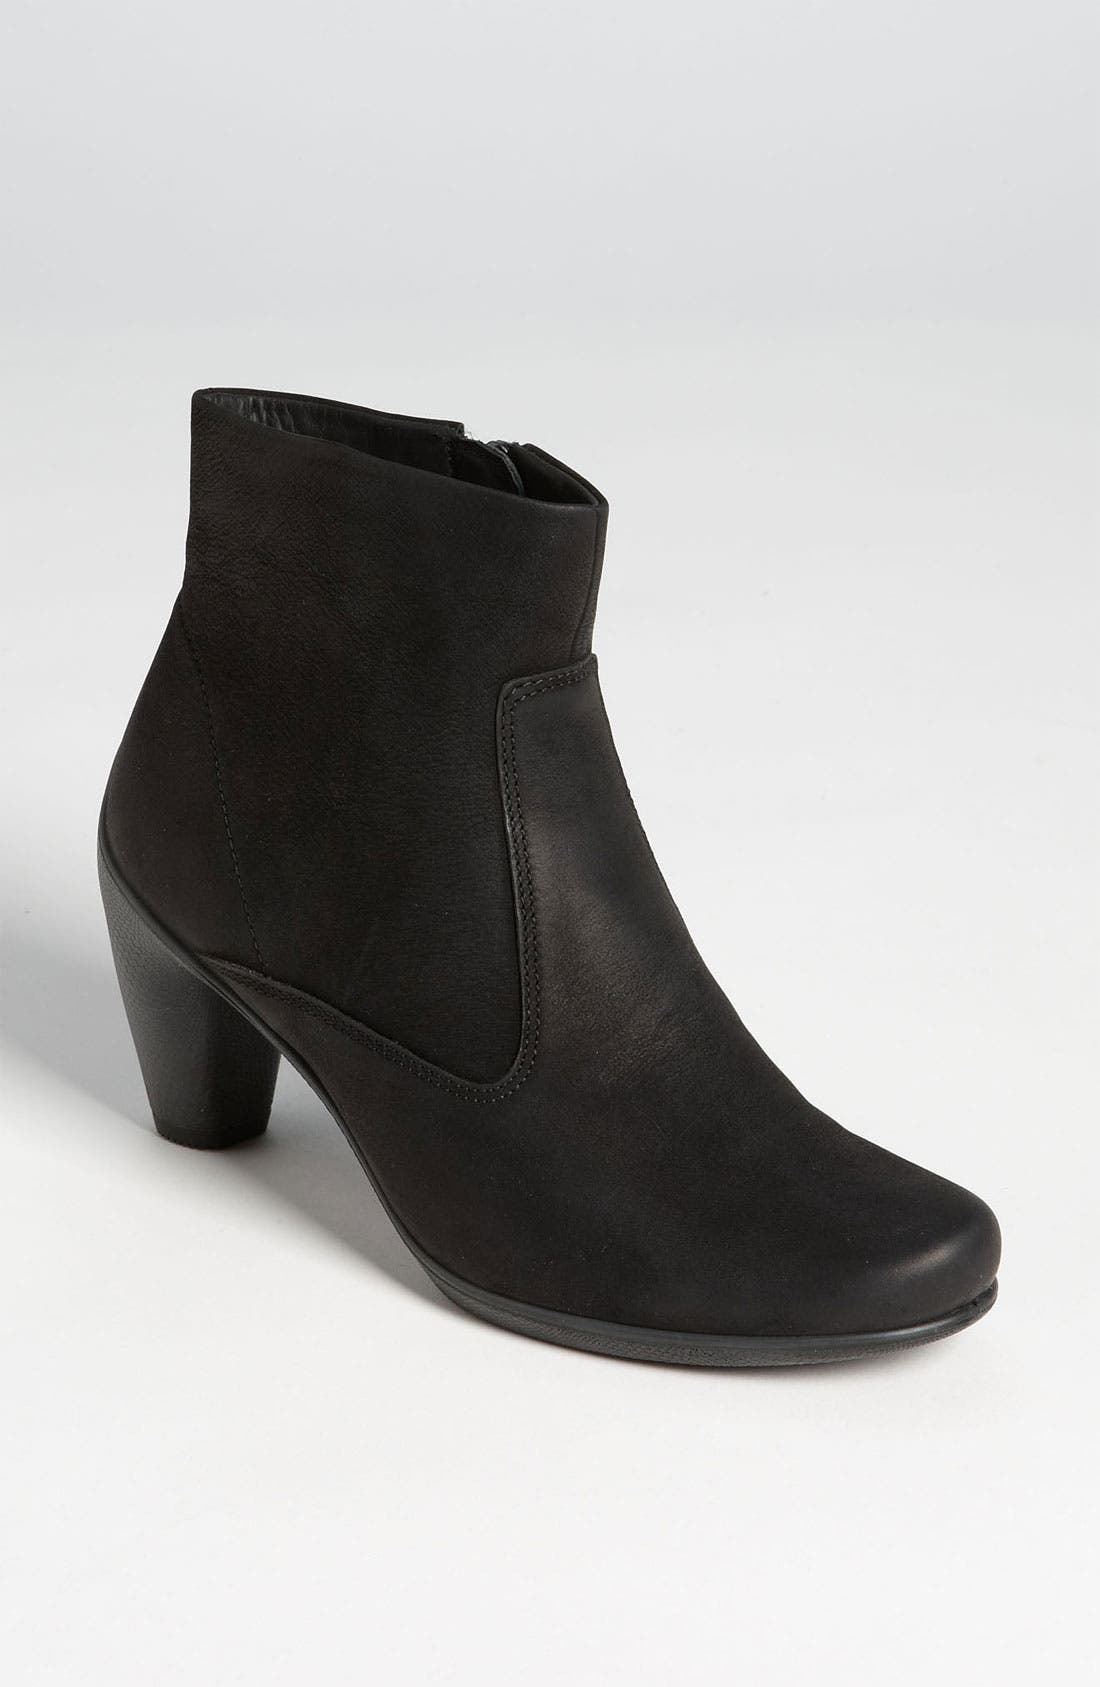 Alternate Image 1 Selected - ECCO 'Sculptured 65' Ankle Bootie